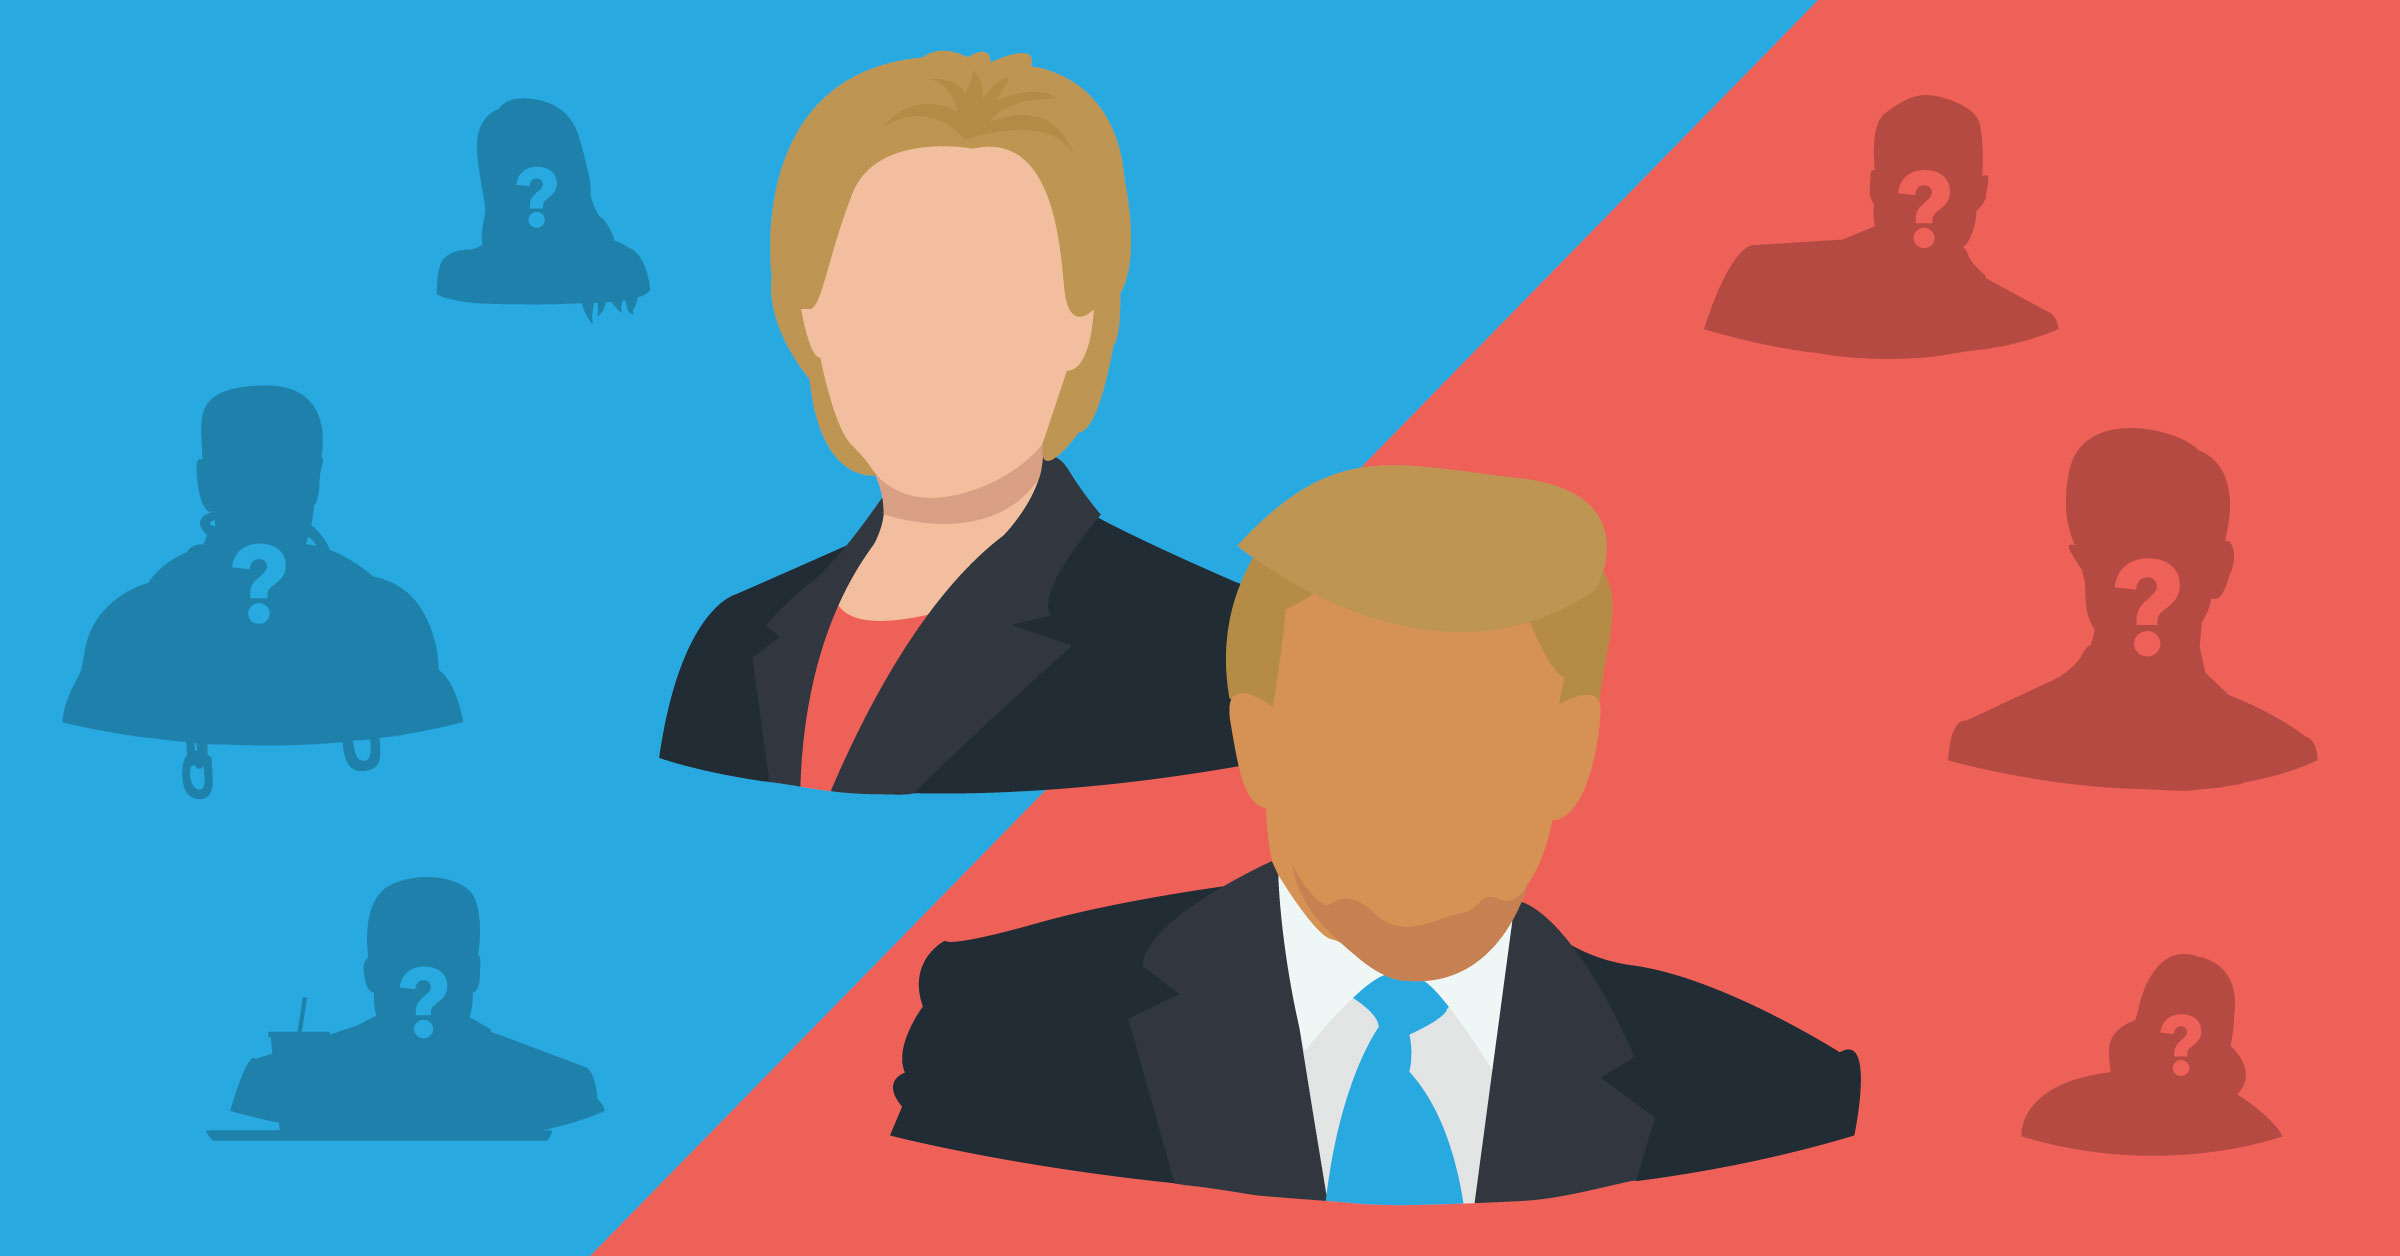 Who Should Hillary And Donald Pick For Their VPs?